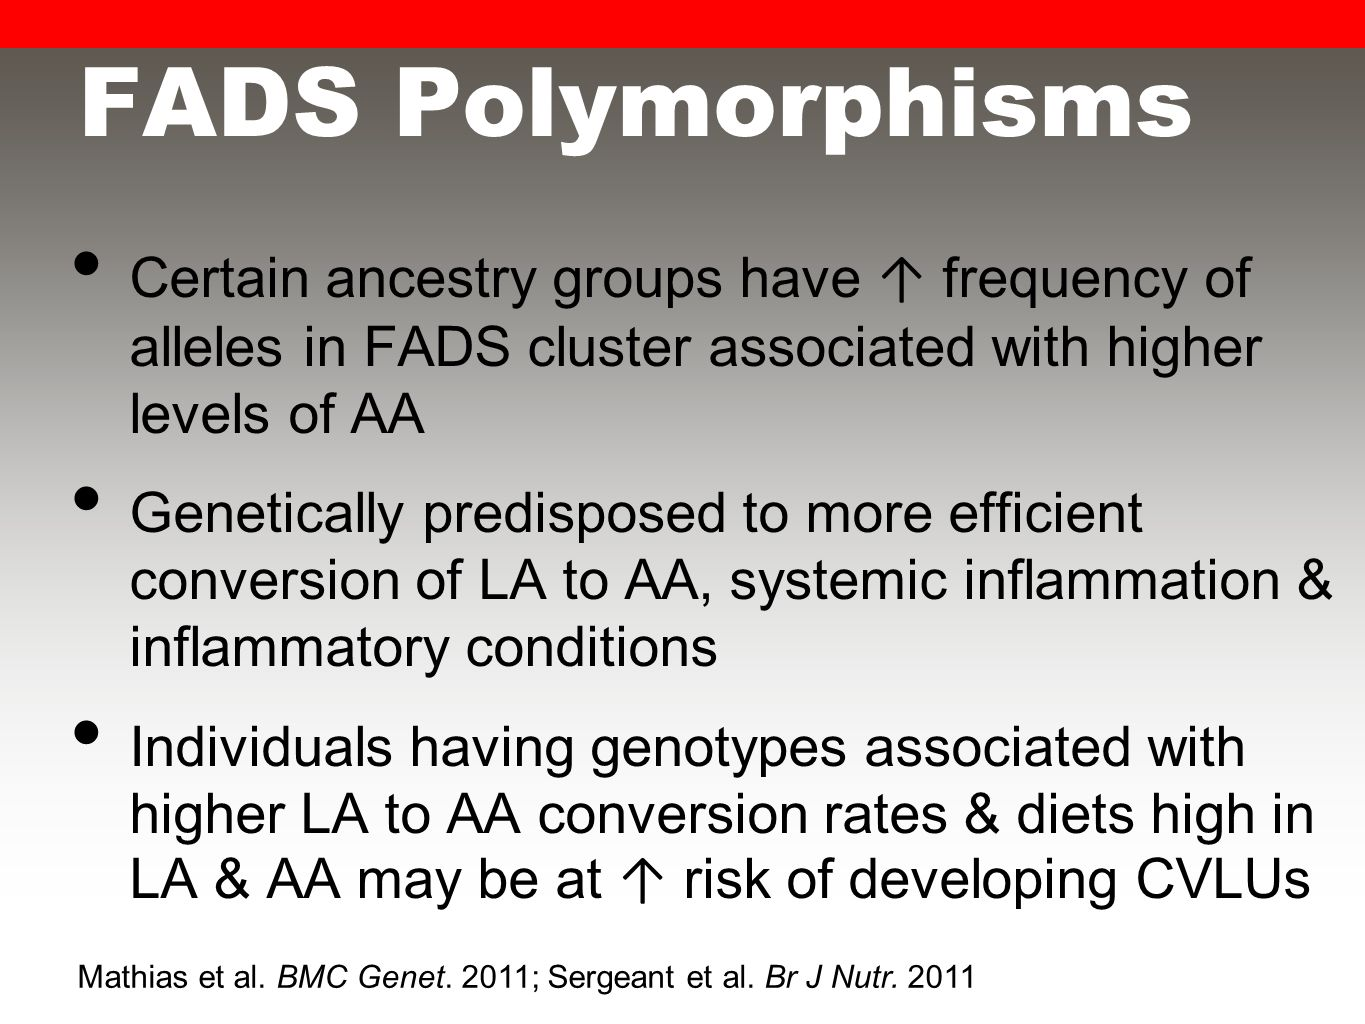 FADS Polymorphisms Certain ancestry groups have ↑ frequency of alleles in FADS cluster associated with higher levels of AA Genetically predisposed to more efficient conversion of LA to AA, systemic inflammation & inflammatory conditions Individuals having genotypes associated with higher LA to AA conversion rates & diets high in LA & AA may be at ↑ risk of developing CVLUs Mathias et al.